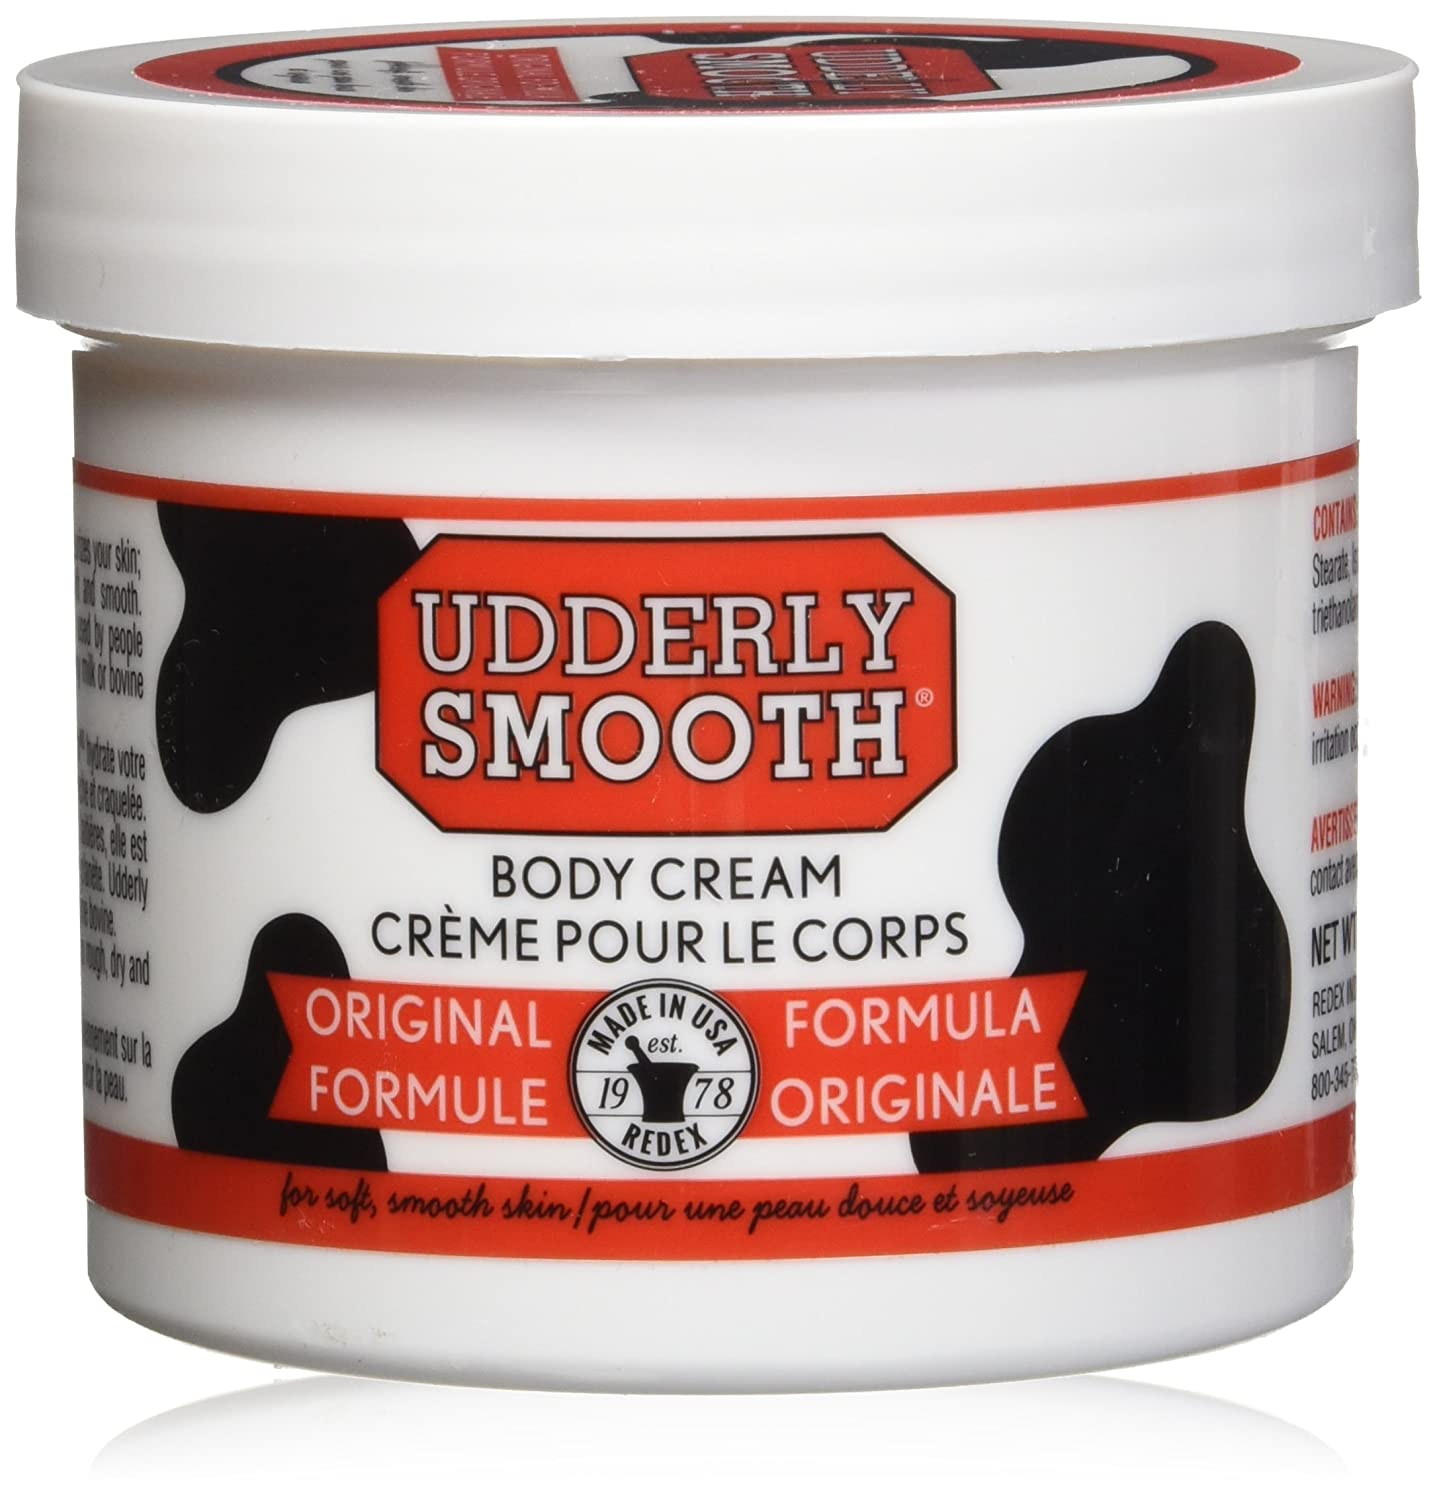 Udderly Smooth Body Cream 12 oz